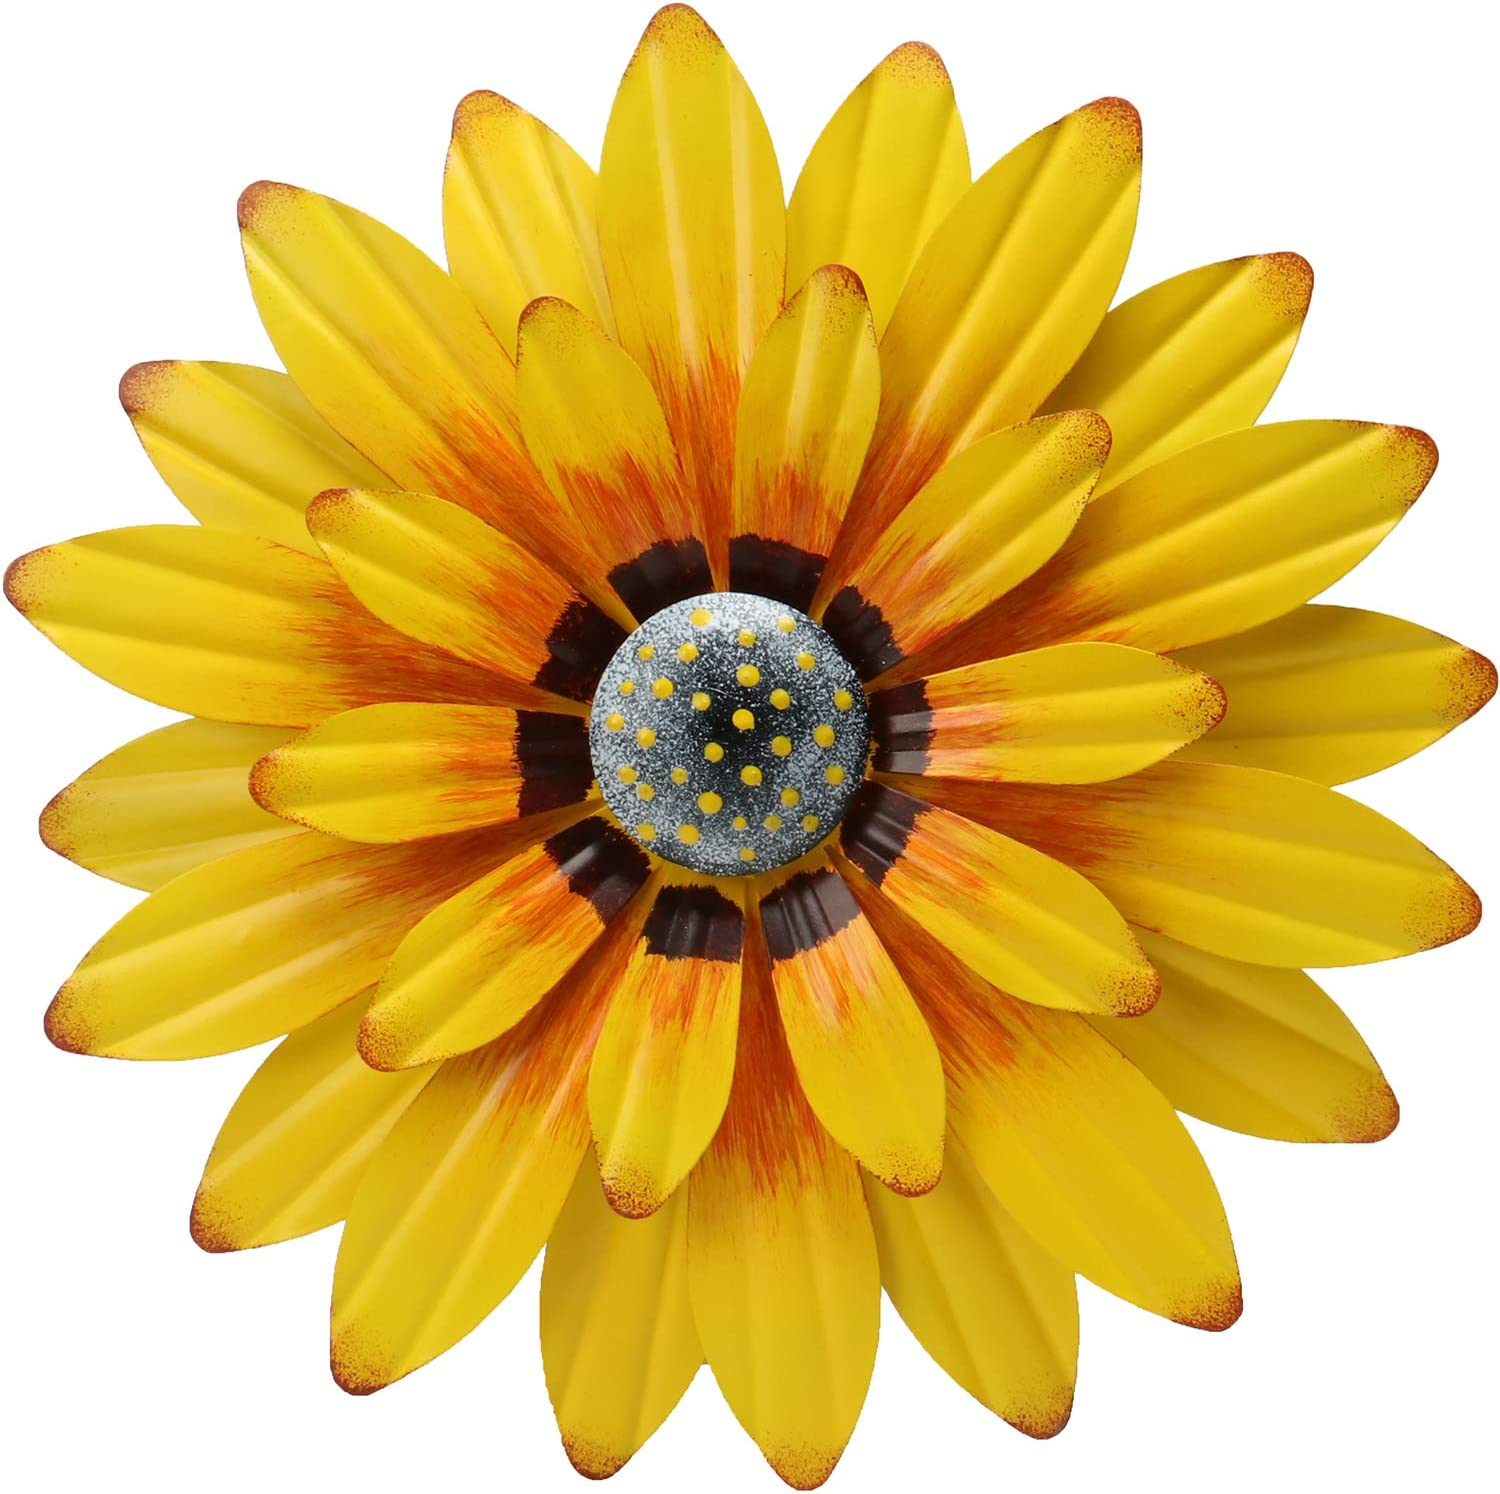 ANYUETE Metal Sunflower Wall Decor 12